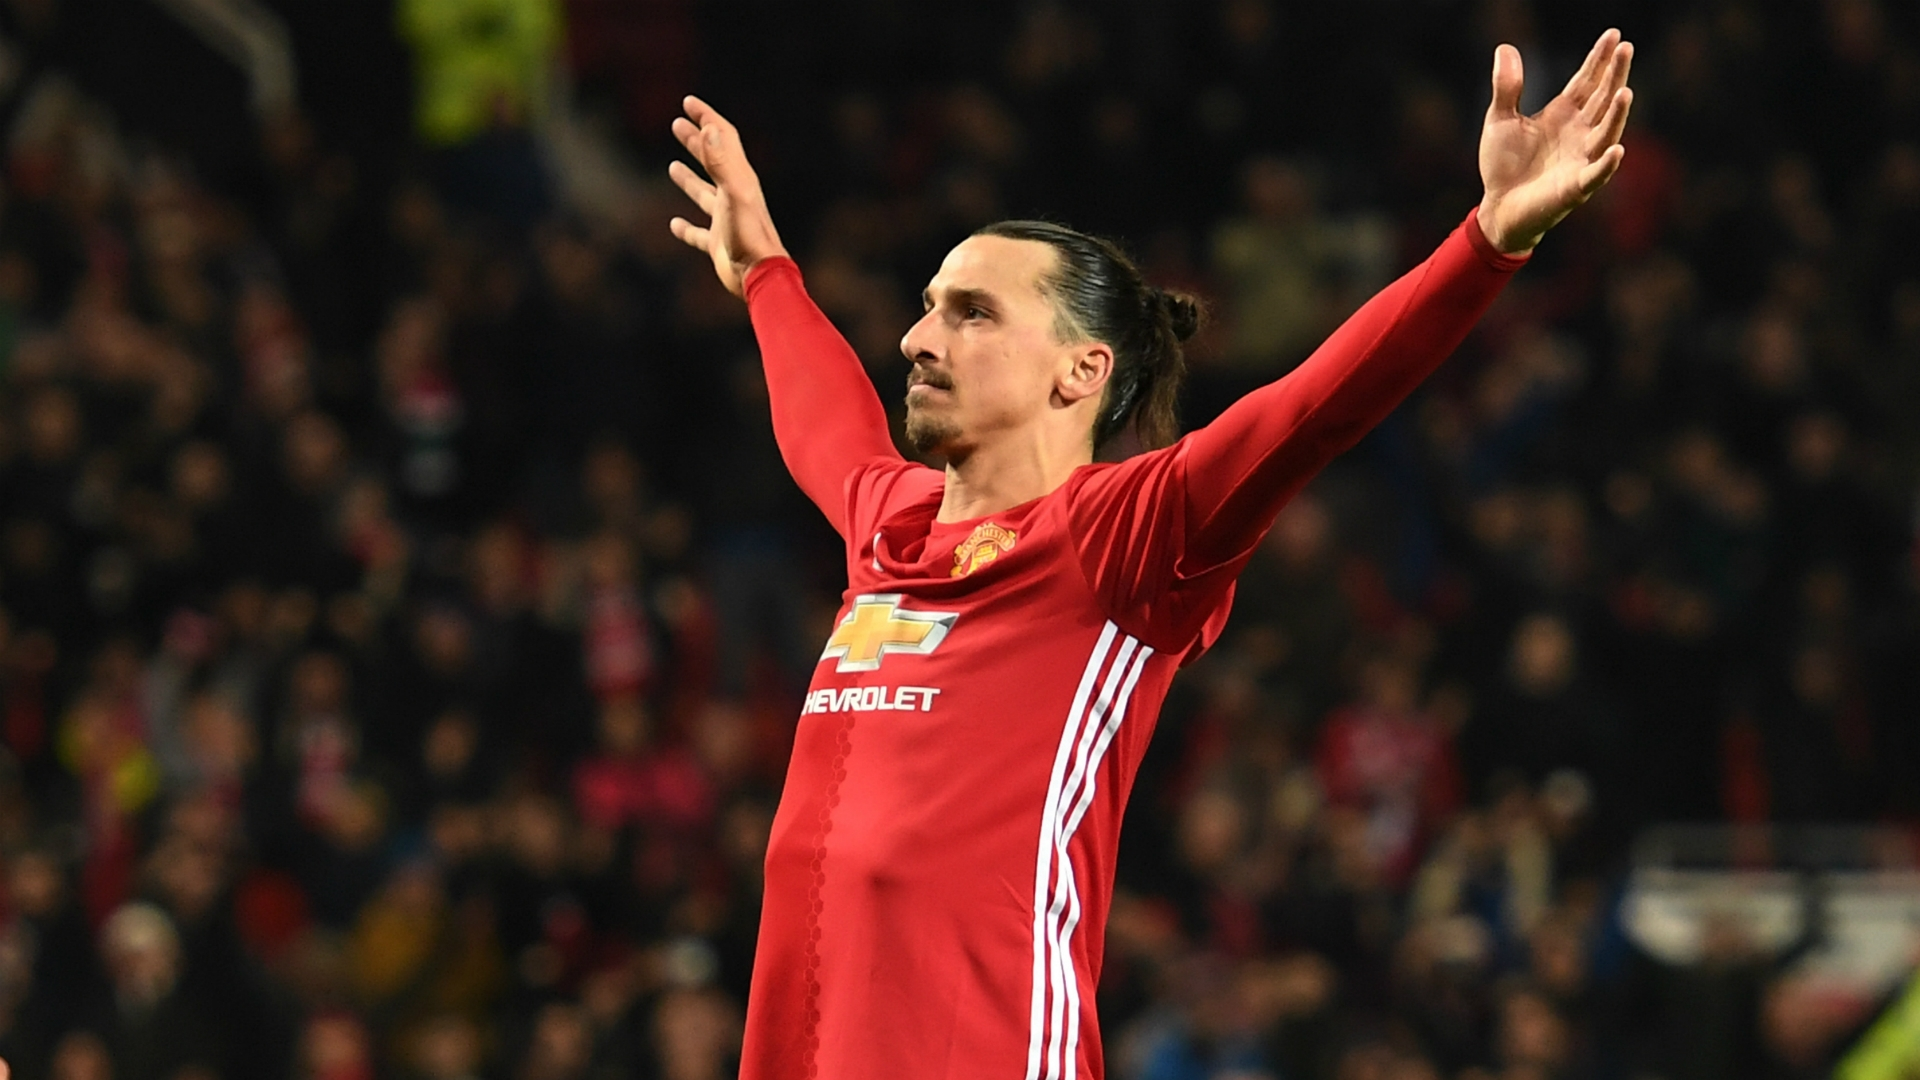 Zlatan Ibrahimovic quickly became a hero in Manchester